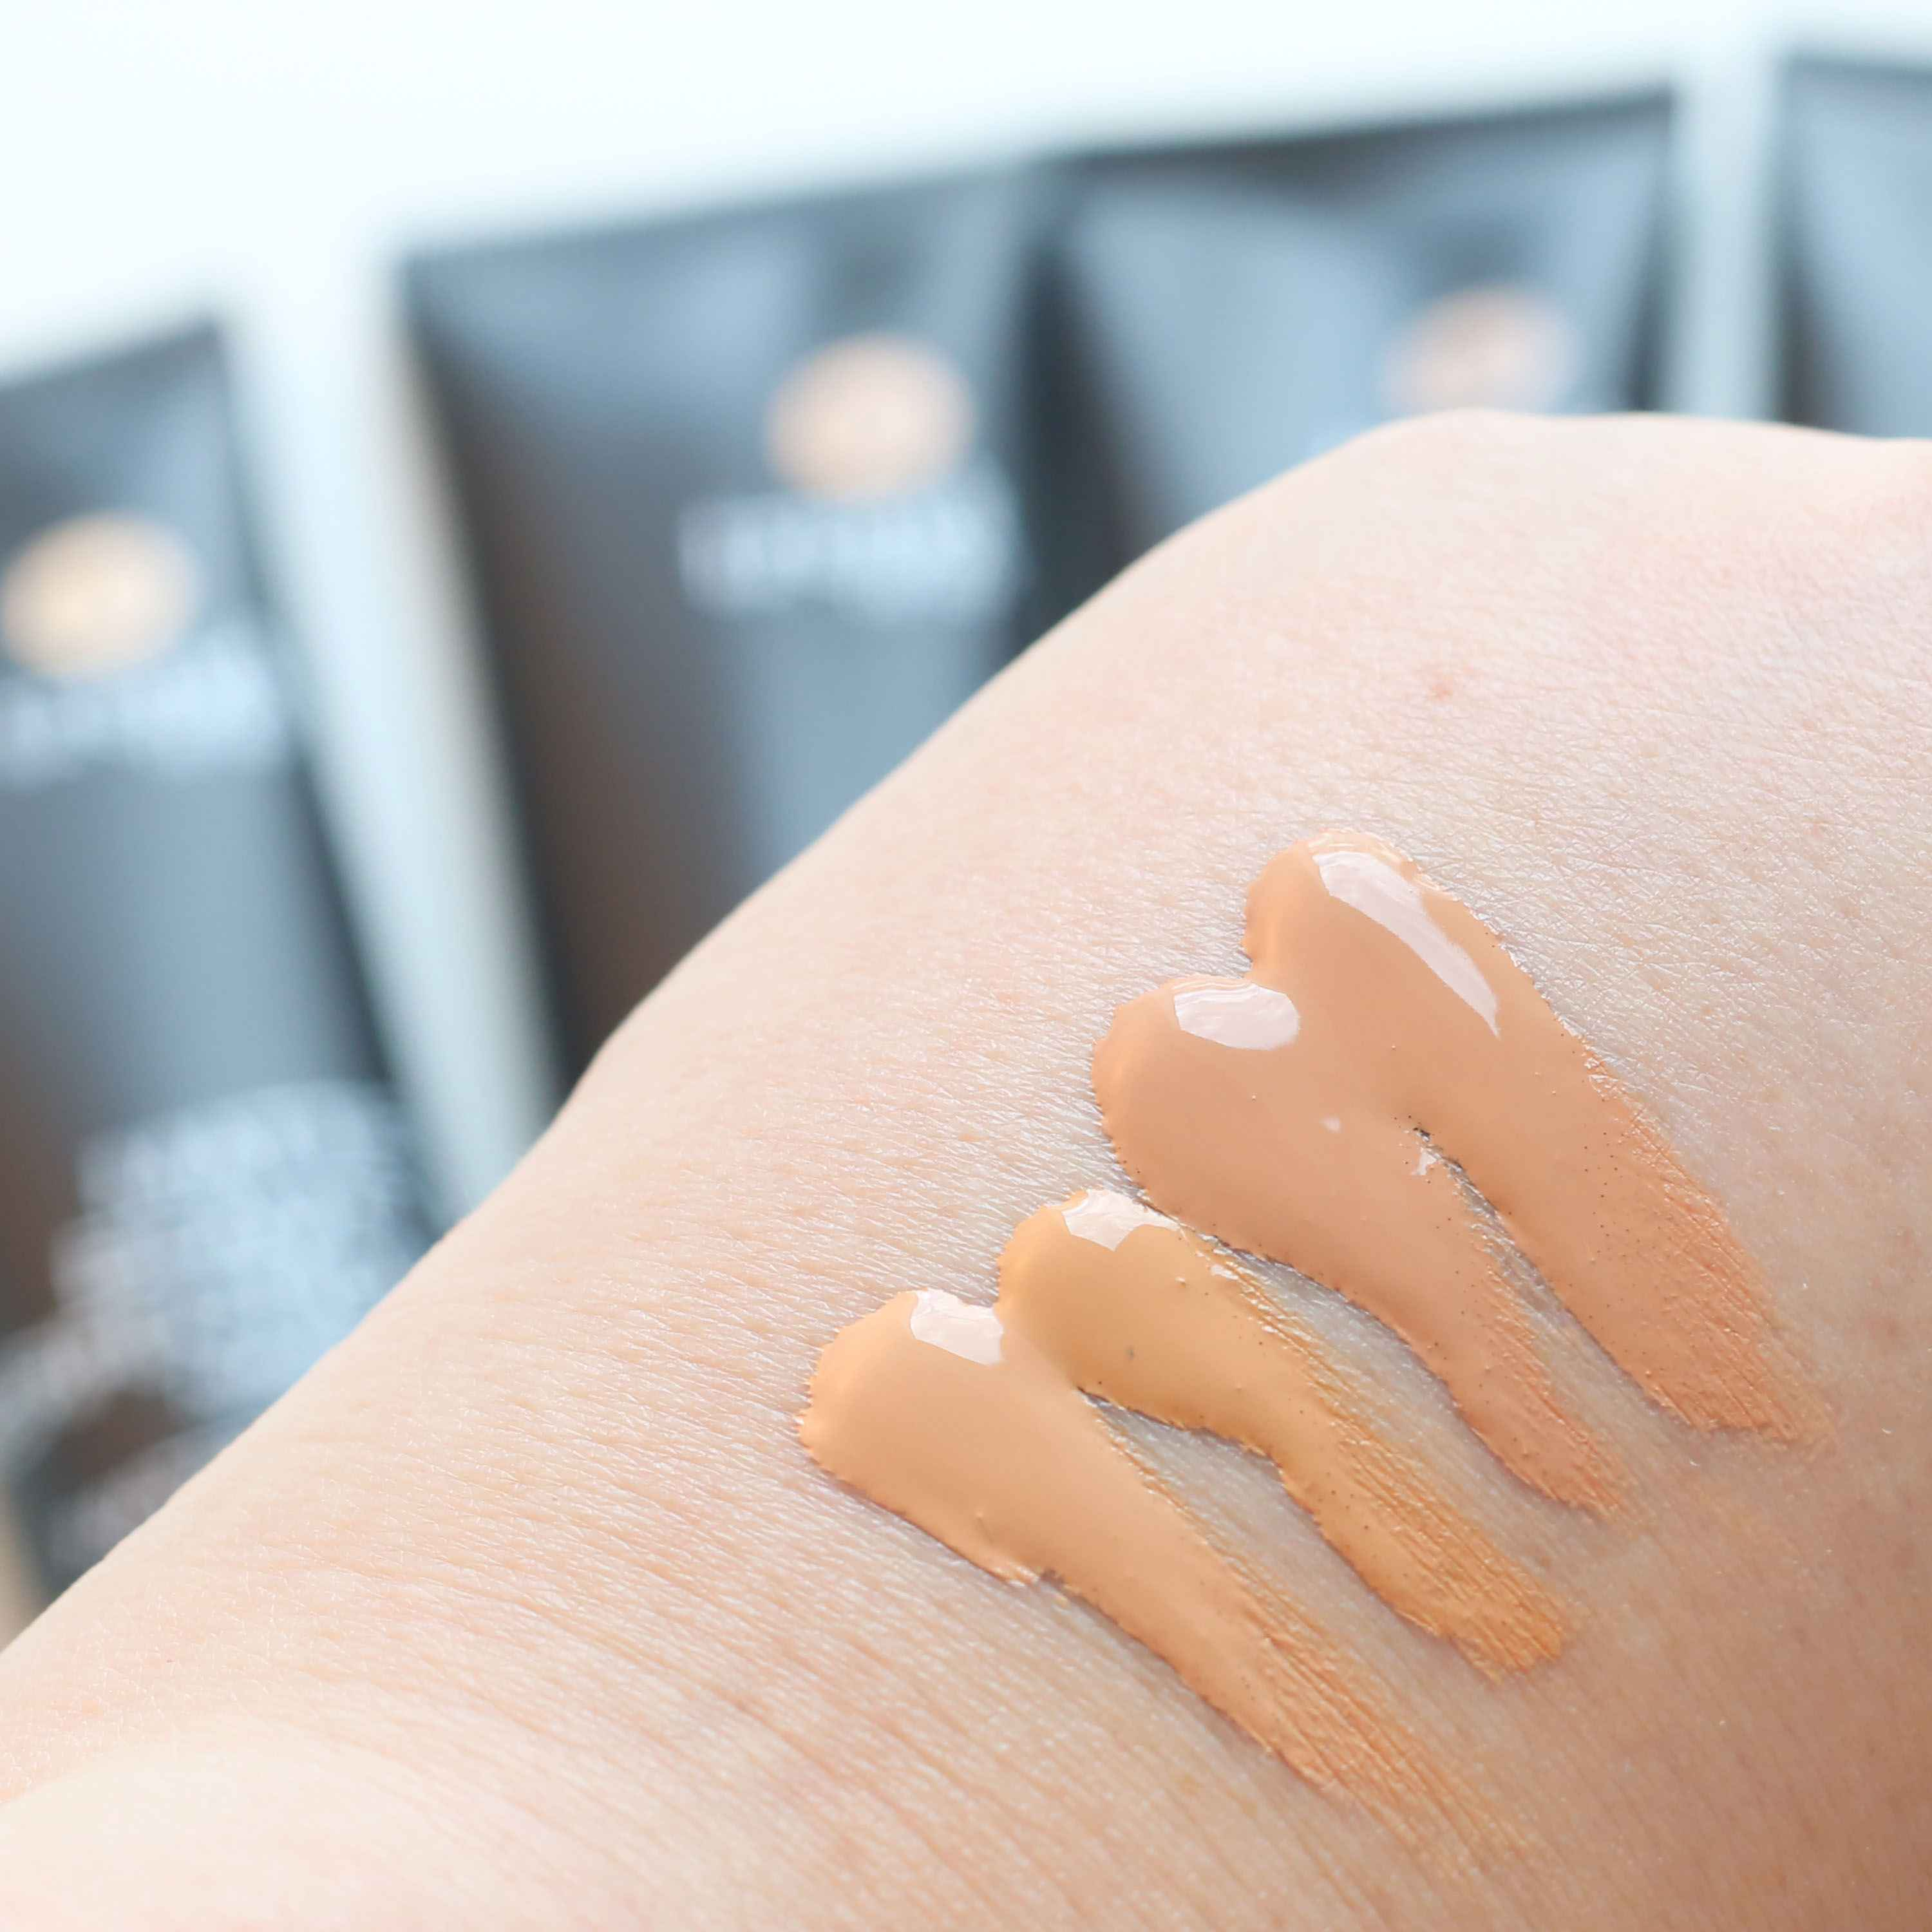 Swatches Matte Beauty Perfection Foundation trend it Up InnenAussen